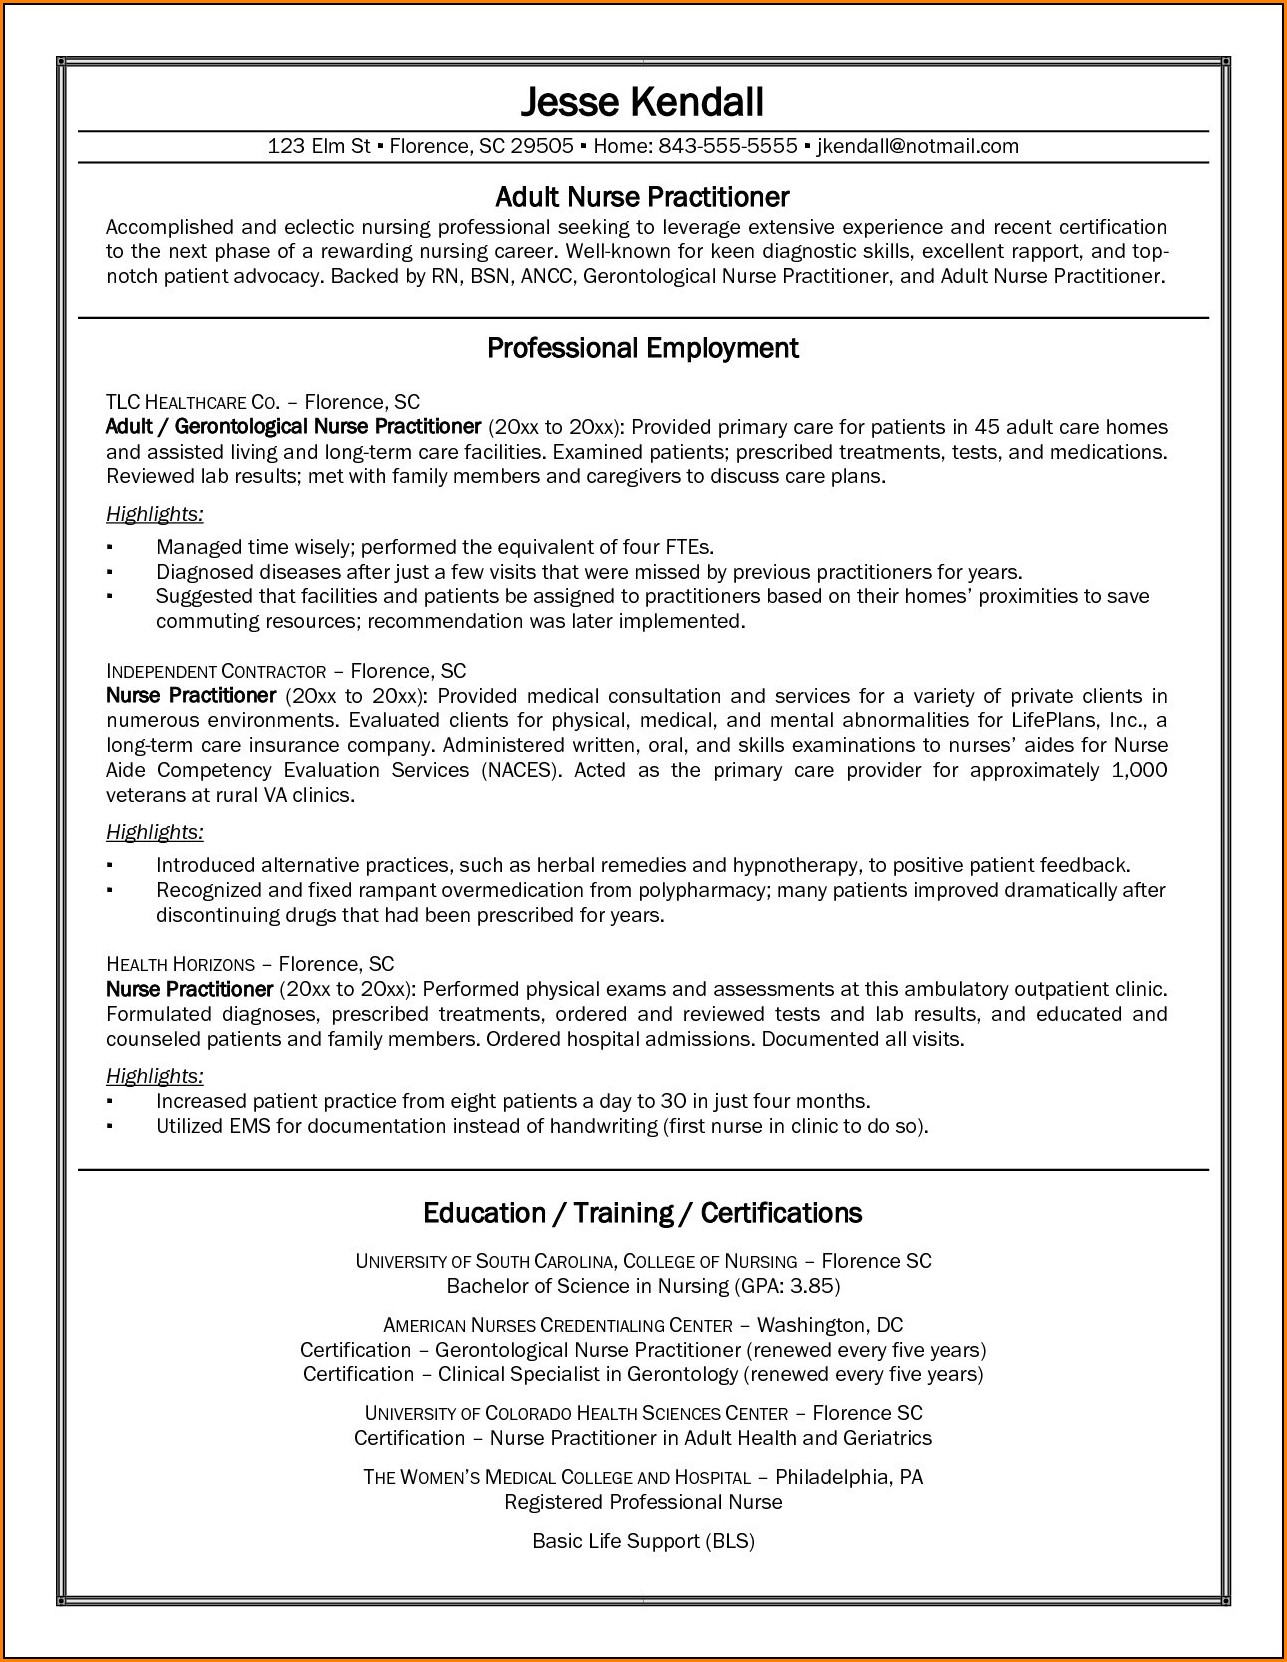 New Graduate Nurse Practitioner Resume Template لم يسبق له مثيل